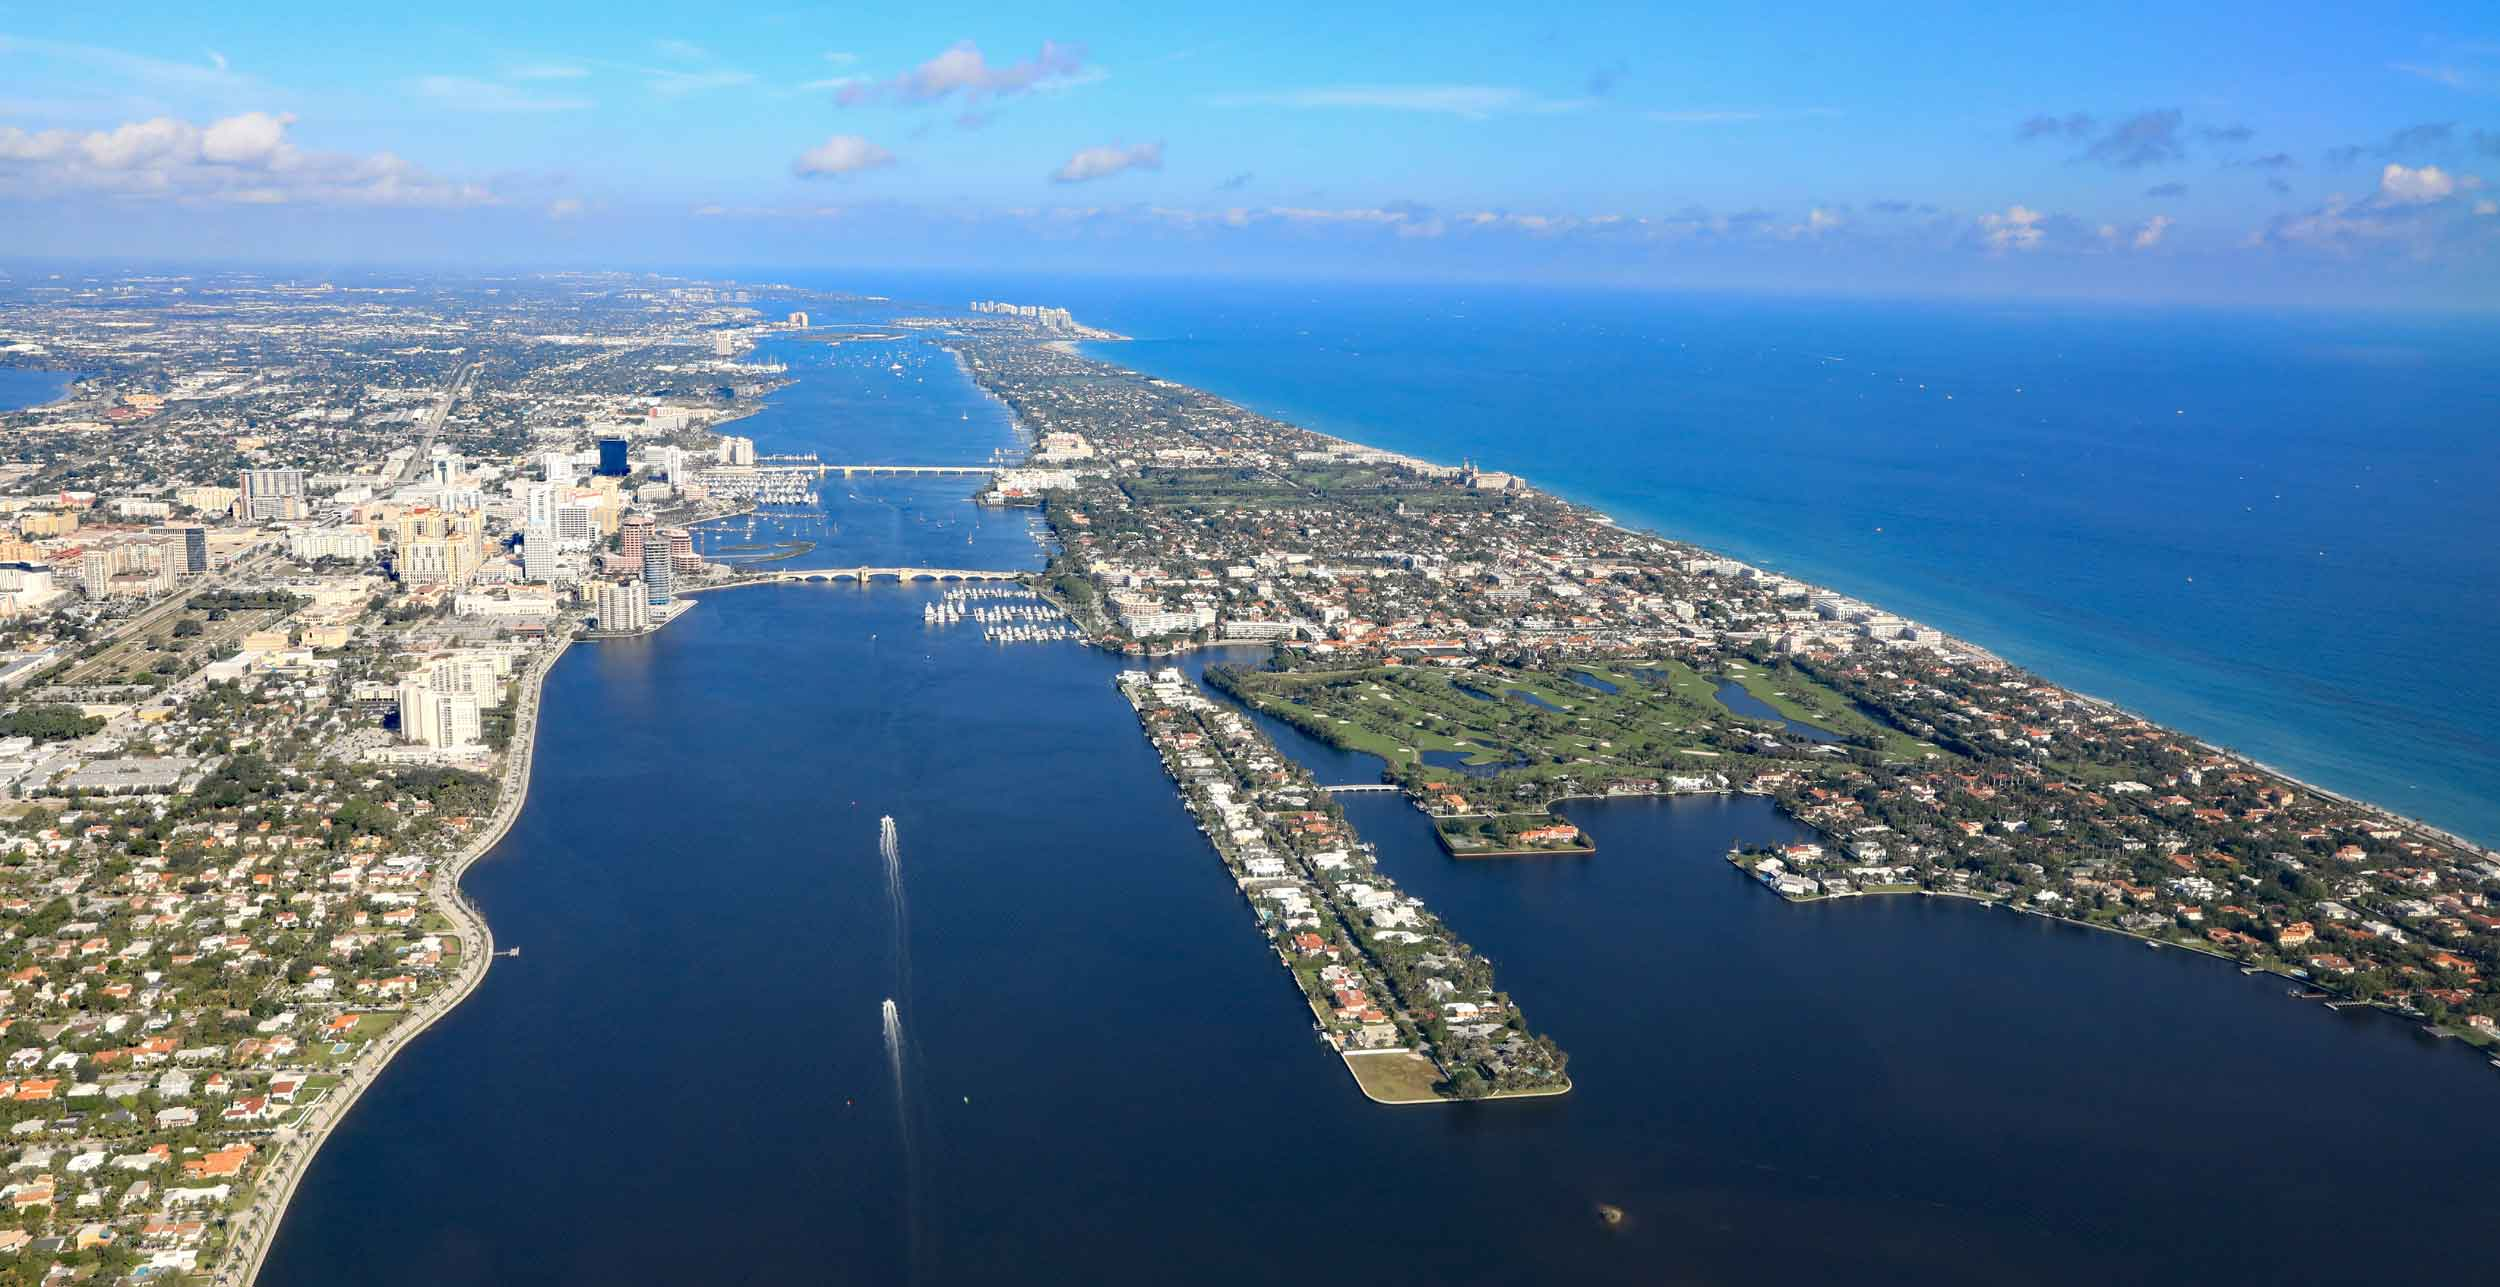 America's first resort destination: The 12-mile-long barrier island of Palm Beach is situated between the Intracoastal Waterway and the Atlantic Ocean in southeast Florida.